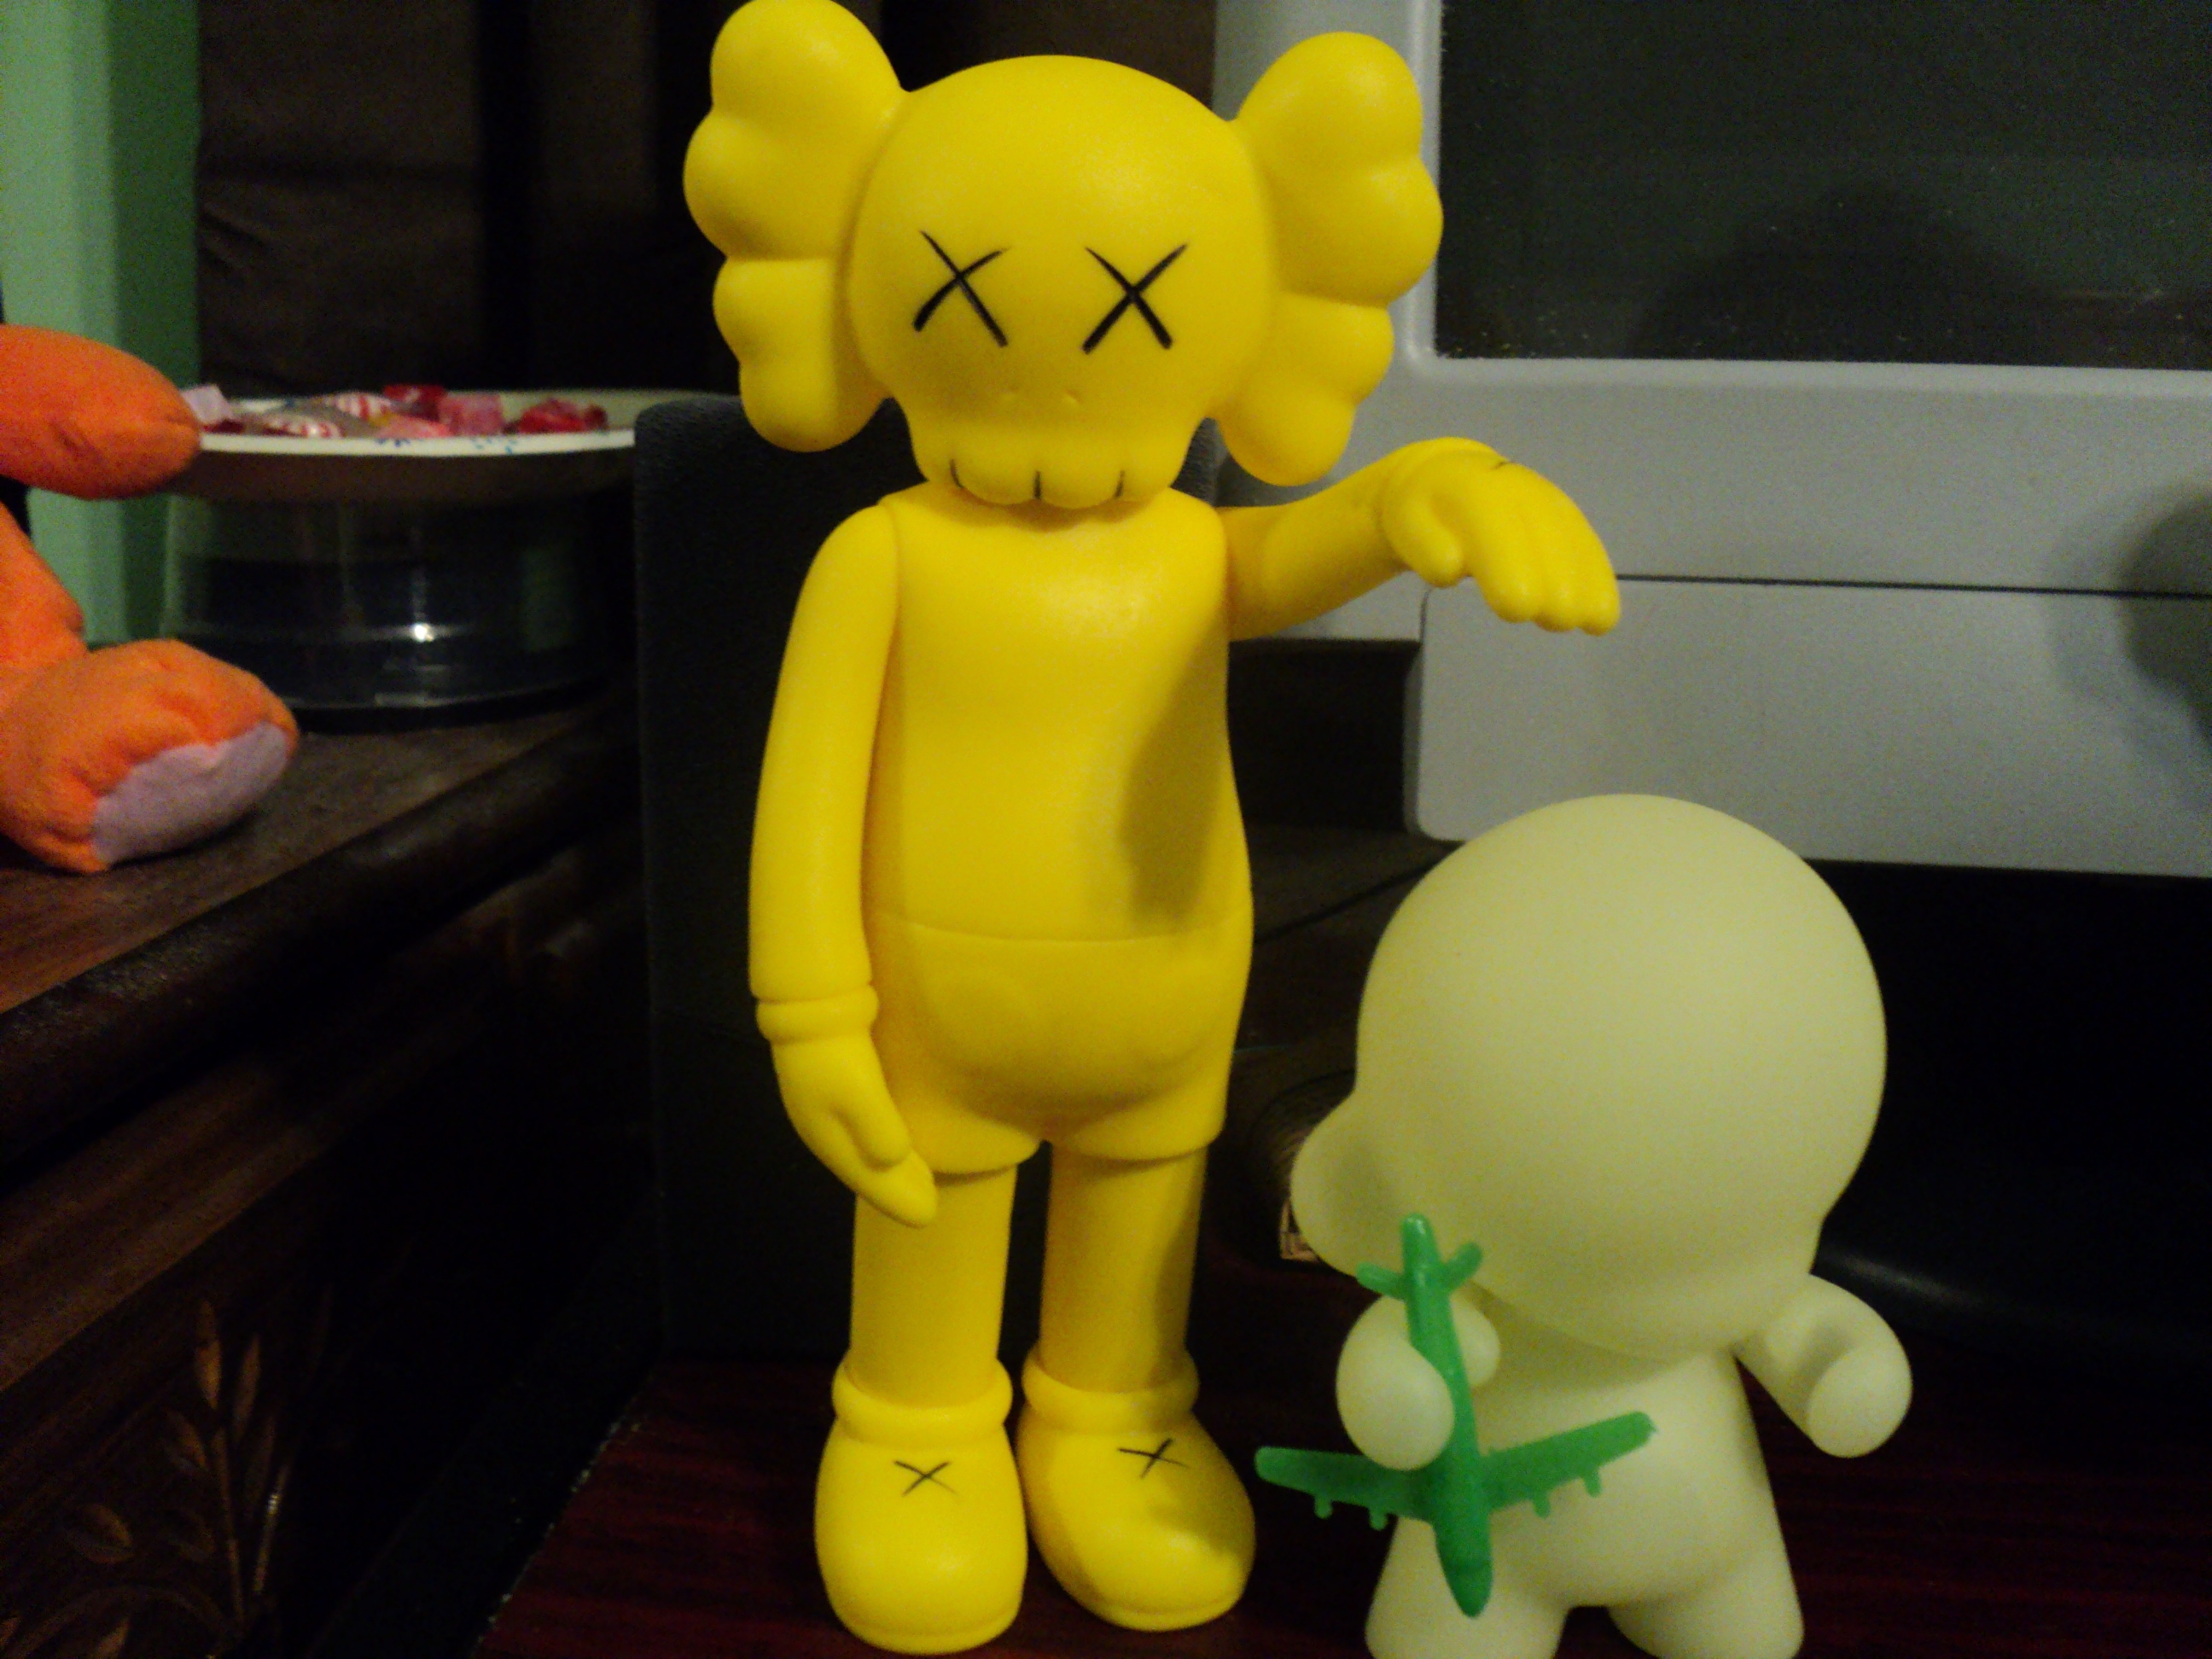 Dilly Jean Custom Toys Art KAWS Companion Yellow Factory - Pages invoice templates free kaws online store